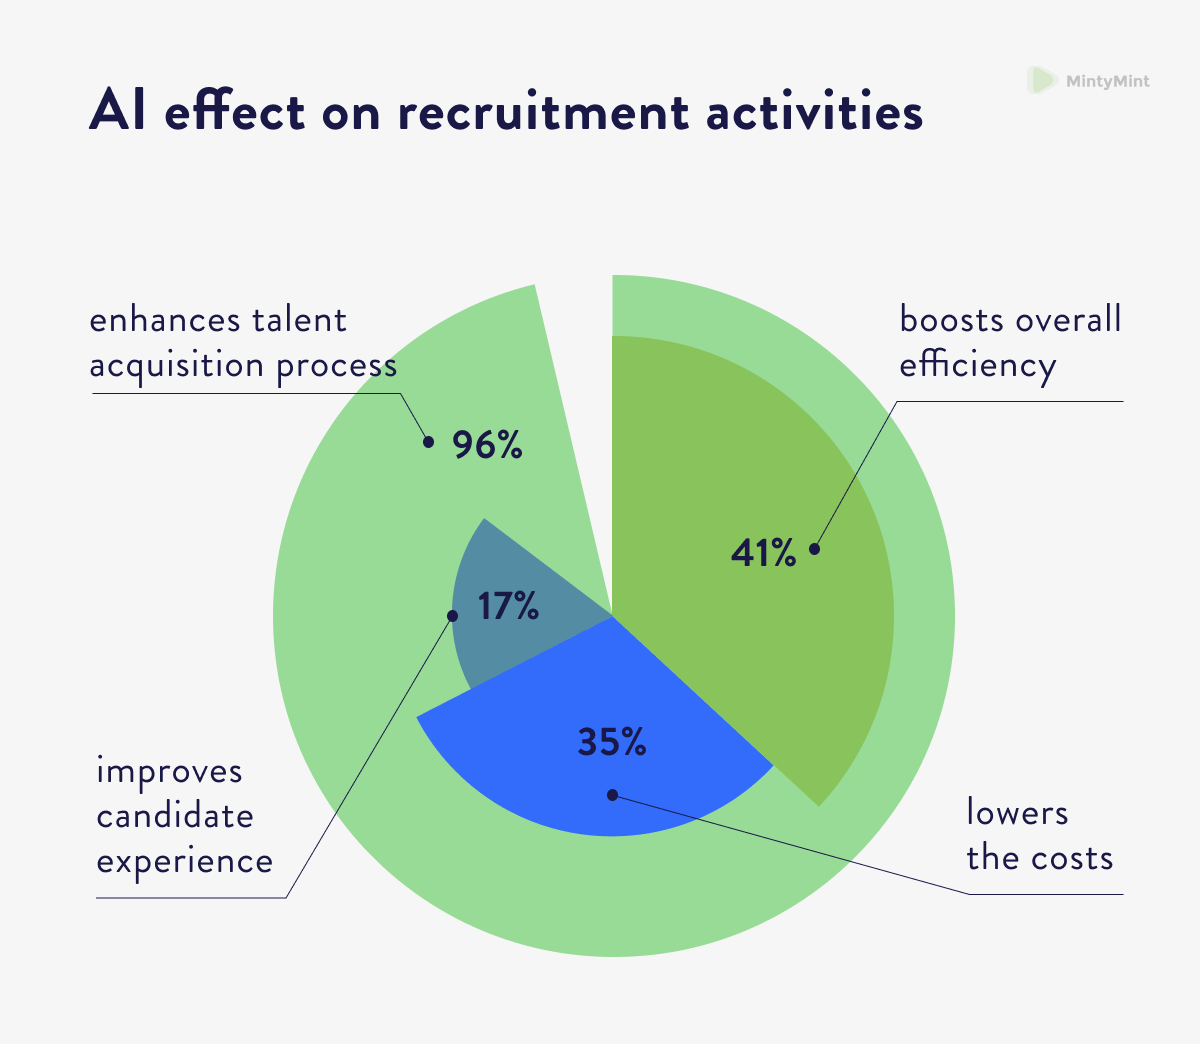 AI Big Data IoT influence on recruitment activities